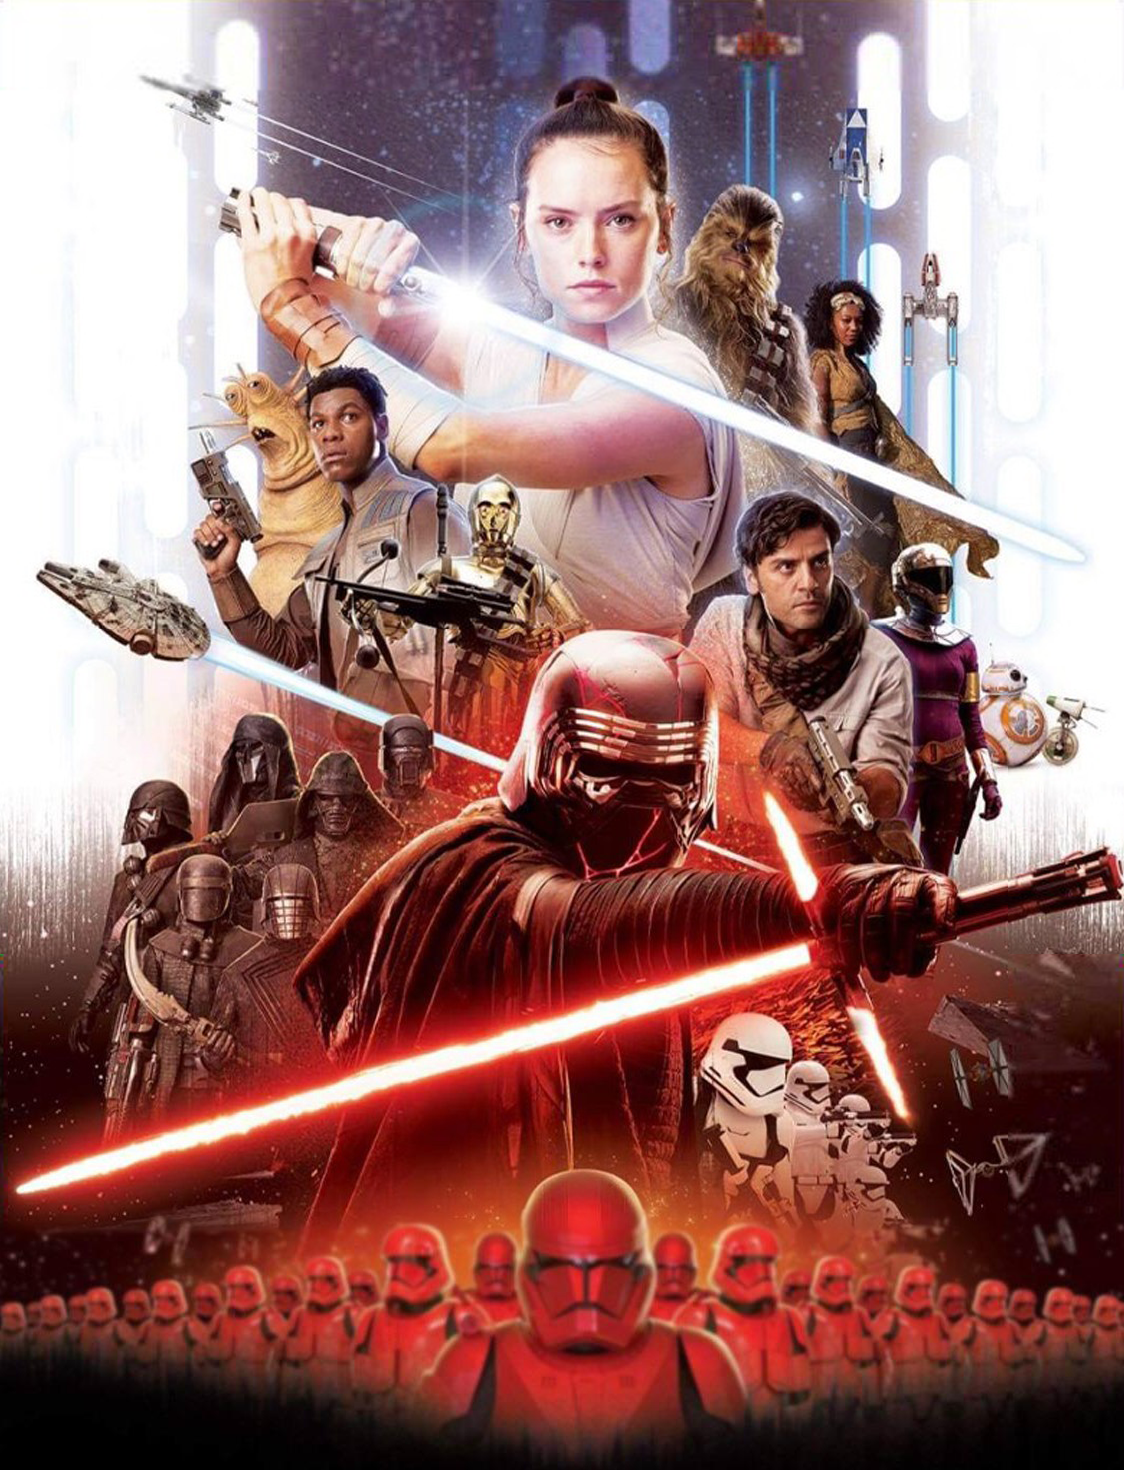 Star Wars Episode IX Poster Leaked Online